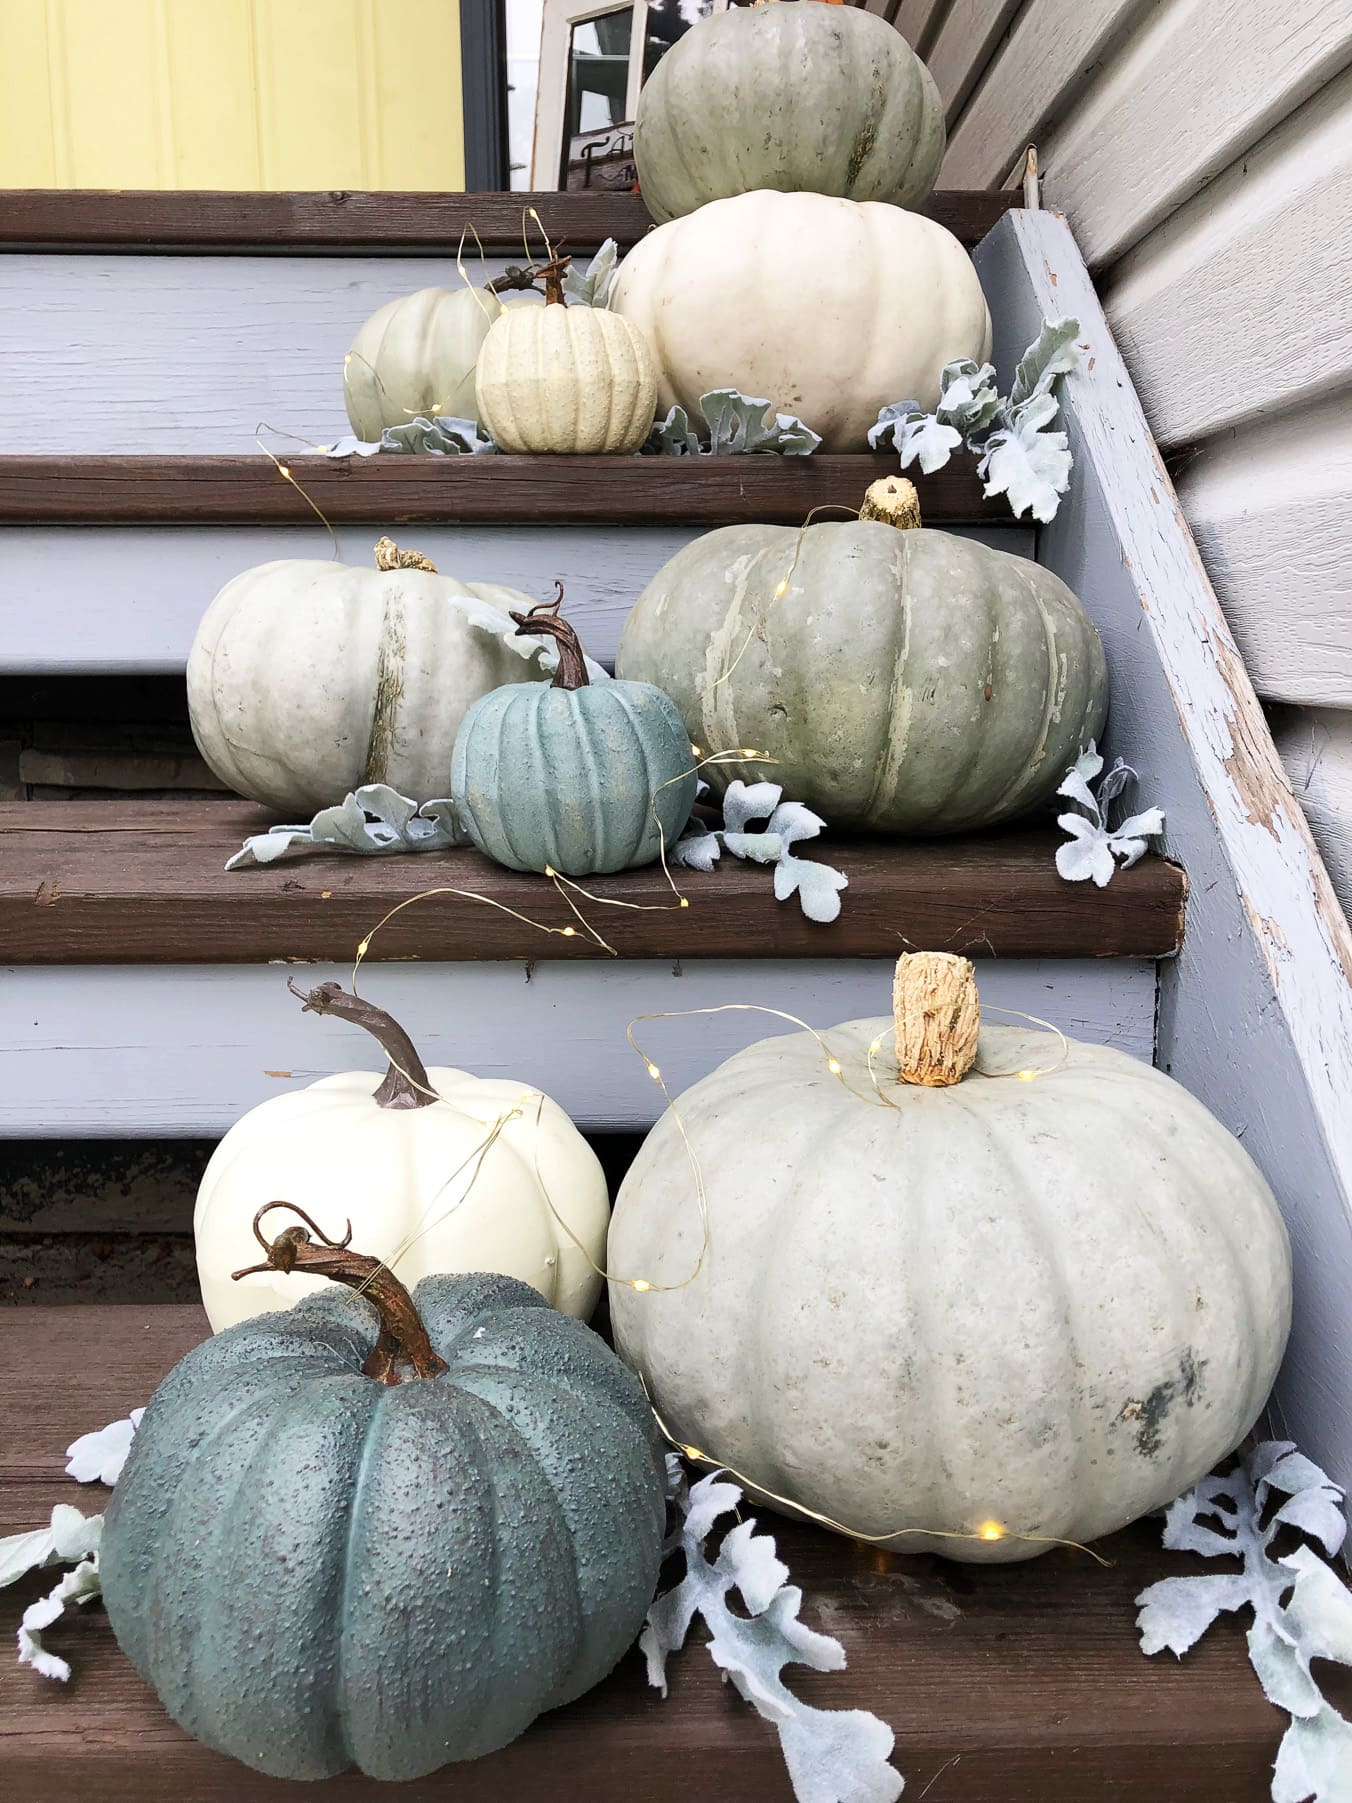 A set of stairs full of grey and blue pumpkins